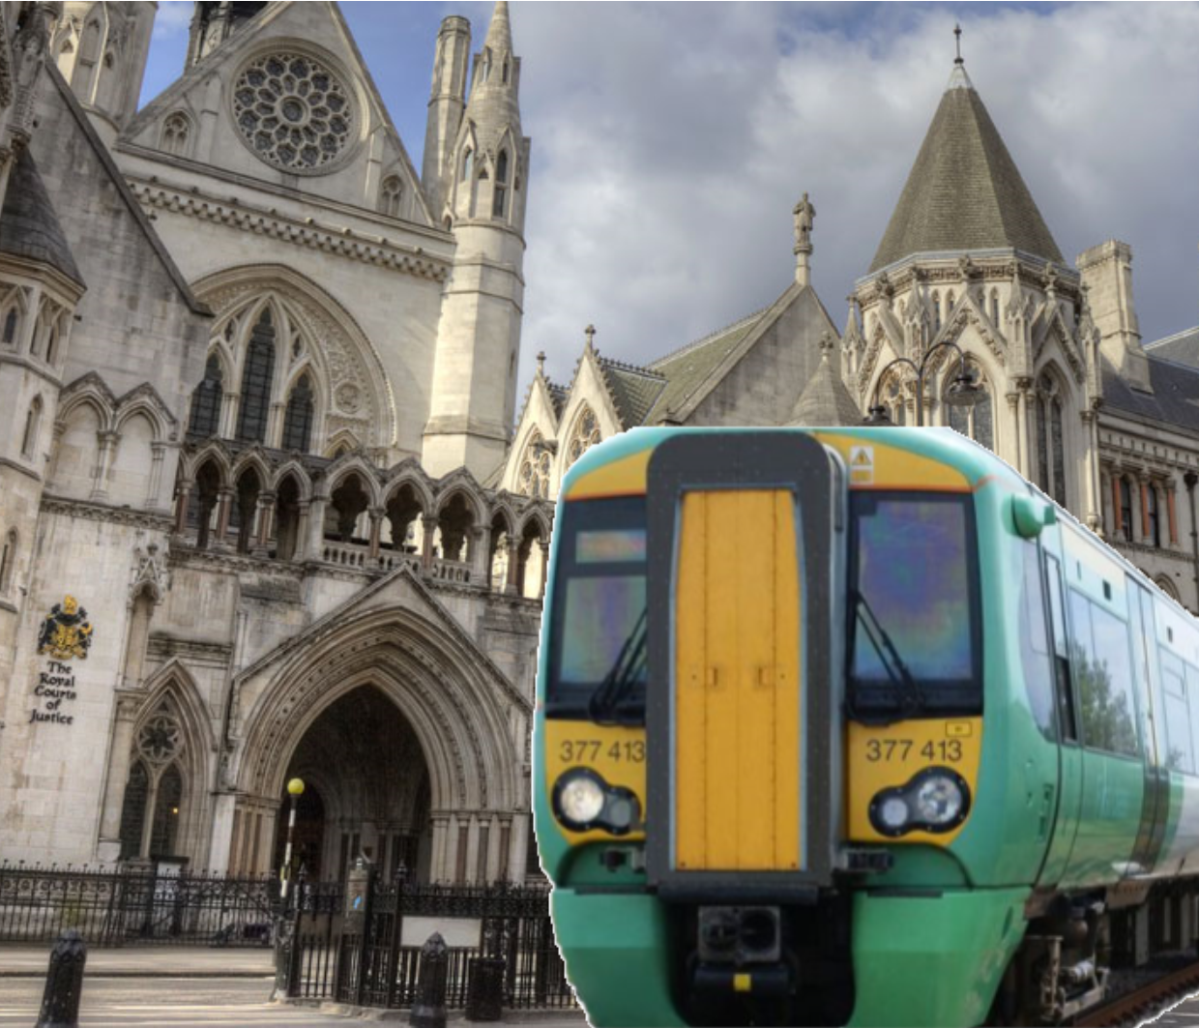 BREAKING NEWS: ABC applies to Court for judicial review of the Department for Transport over Southern Rail